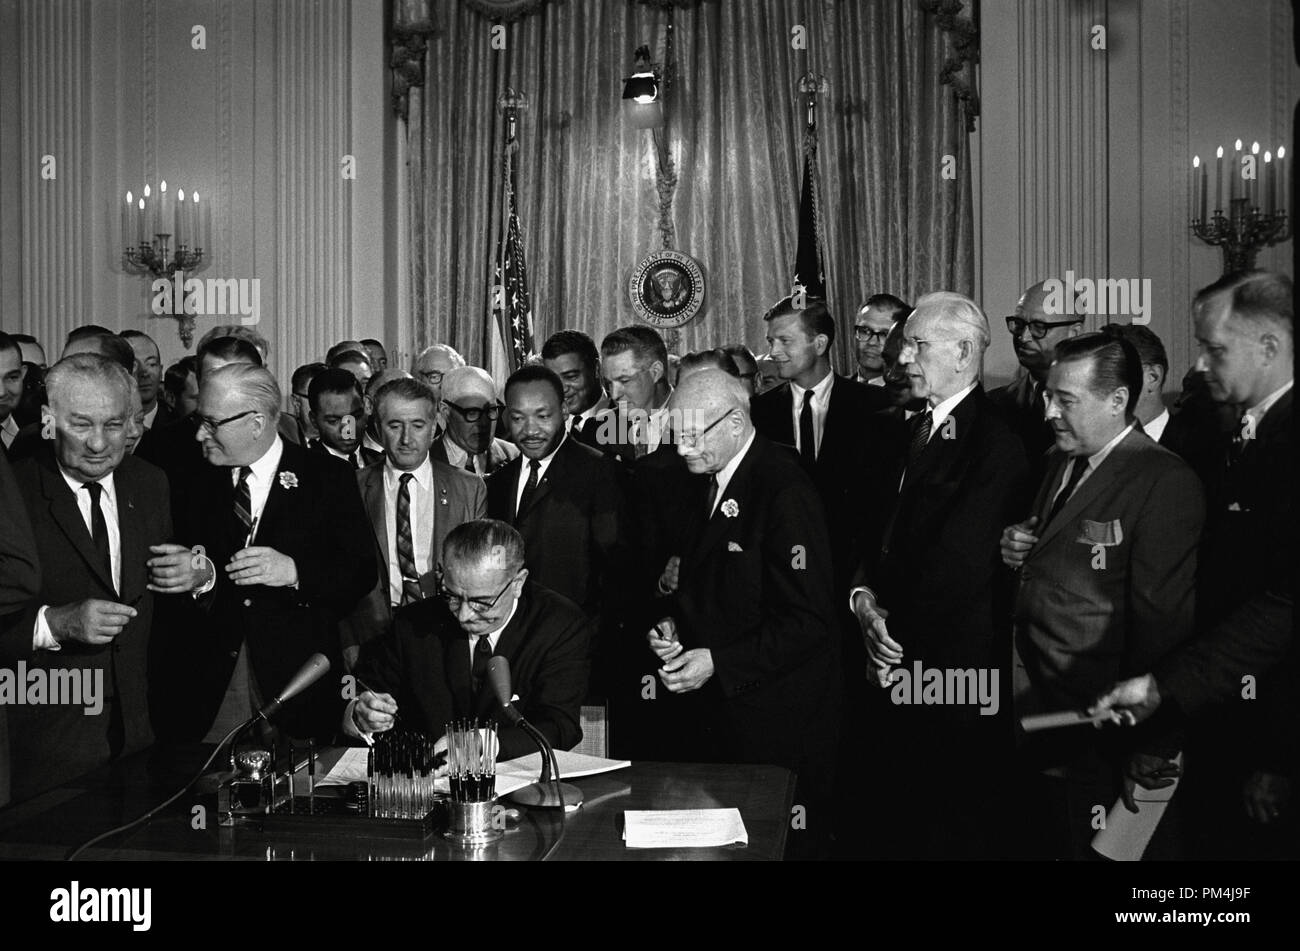 U.S. President Lyndon Baines Johnson Signs the Civil Rights Act of 1964 while Martin Luther King and others witness the signing. Photo by Cecil Stoughton, White House Press Office   File Reference # 1003 621THA Stock Photo